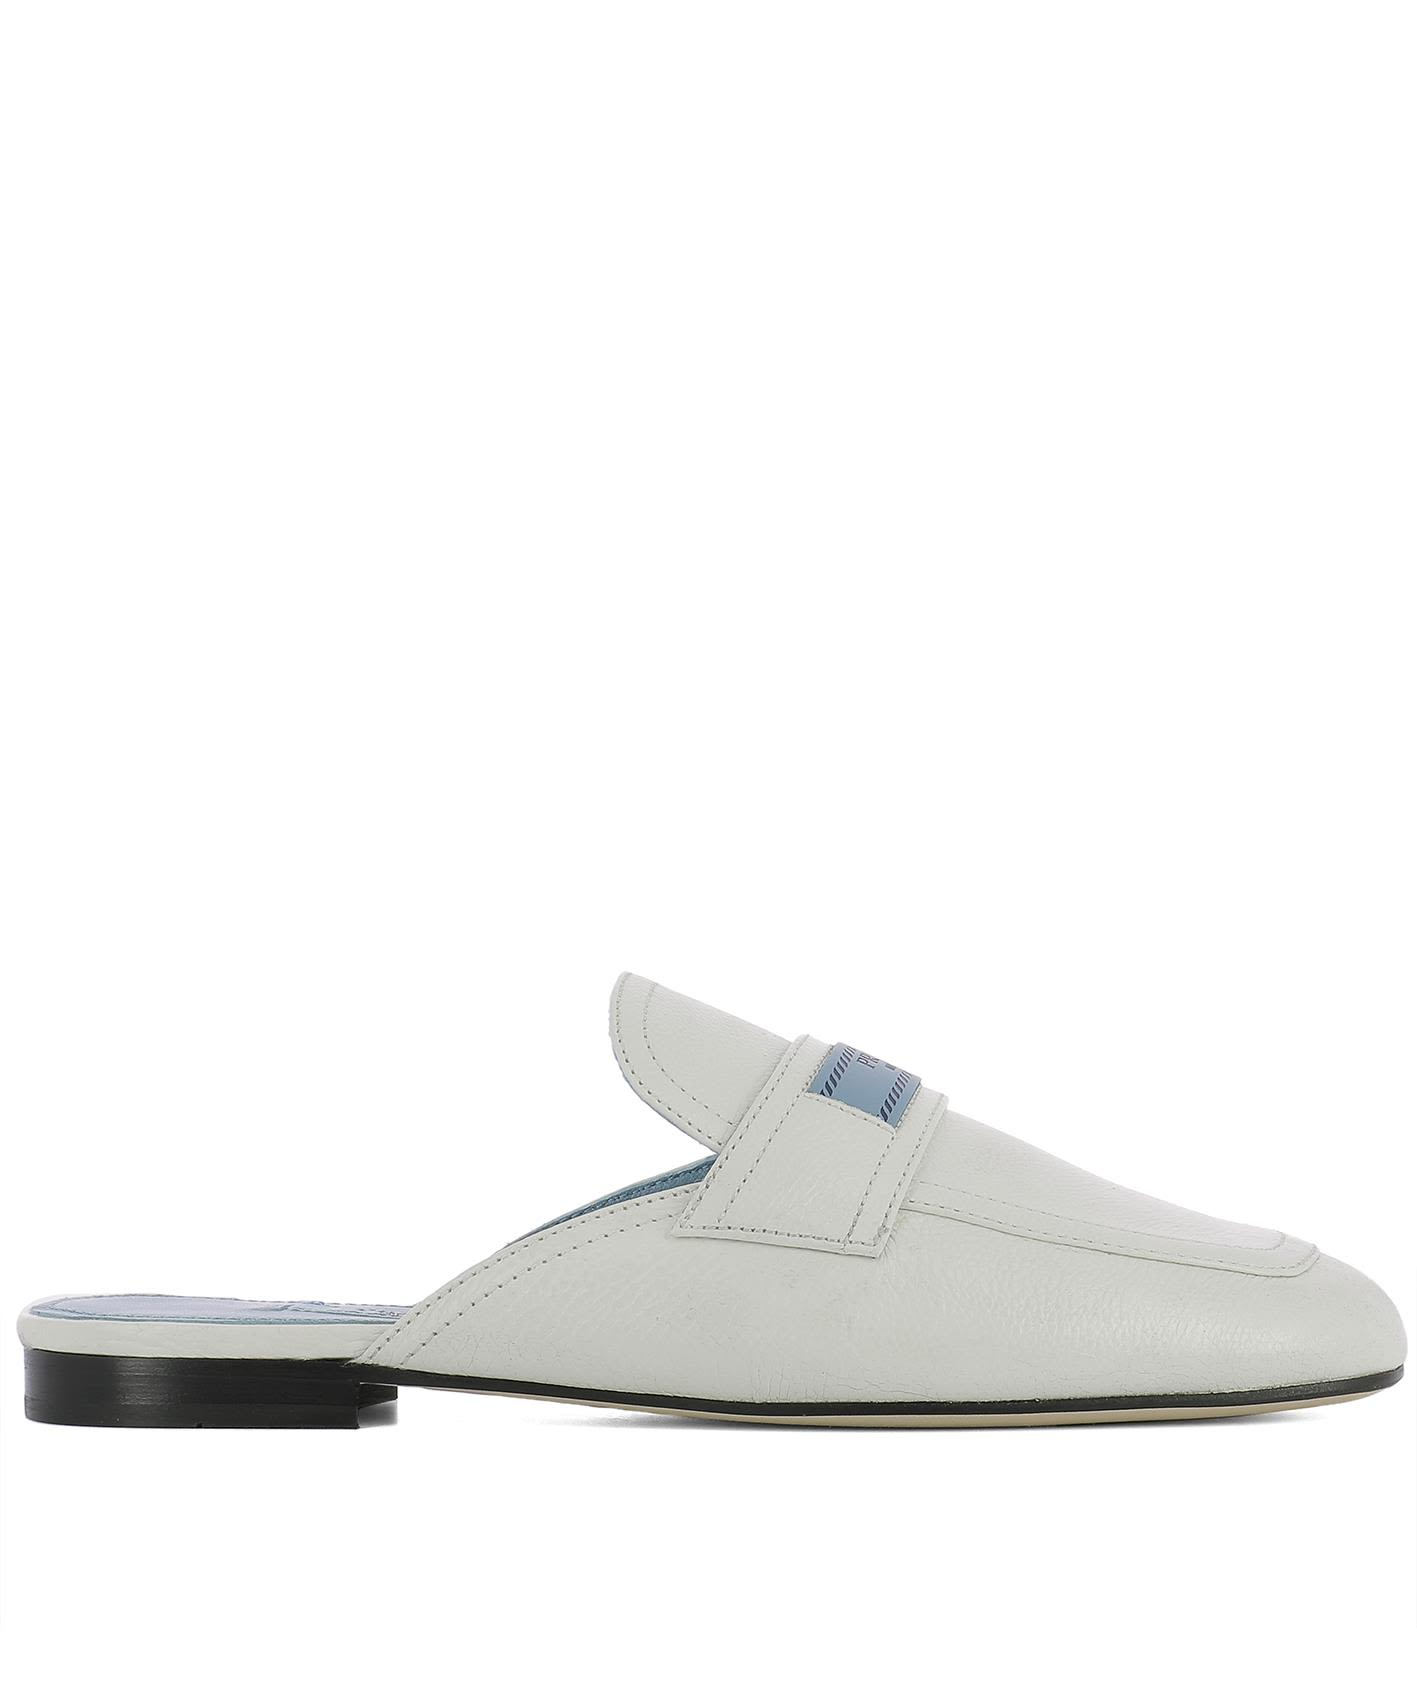 White Leather Slippers